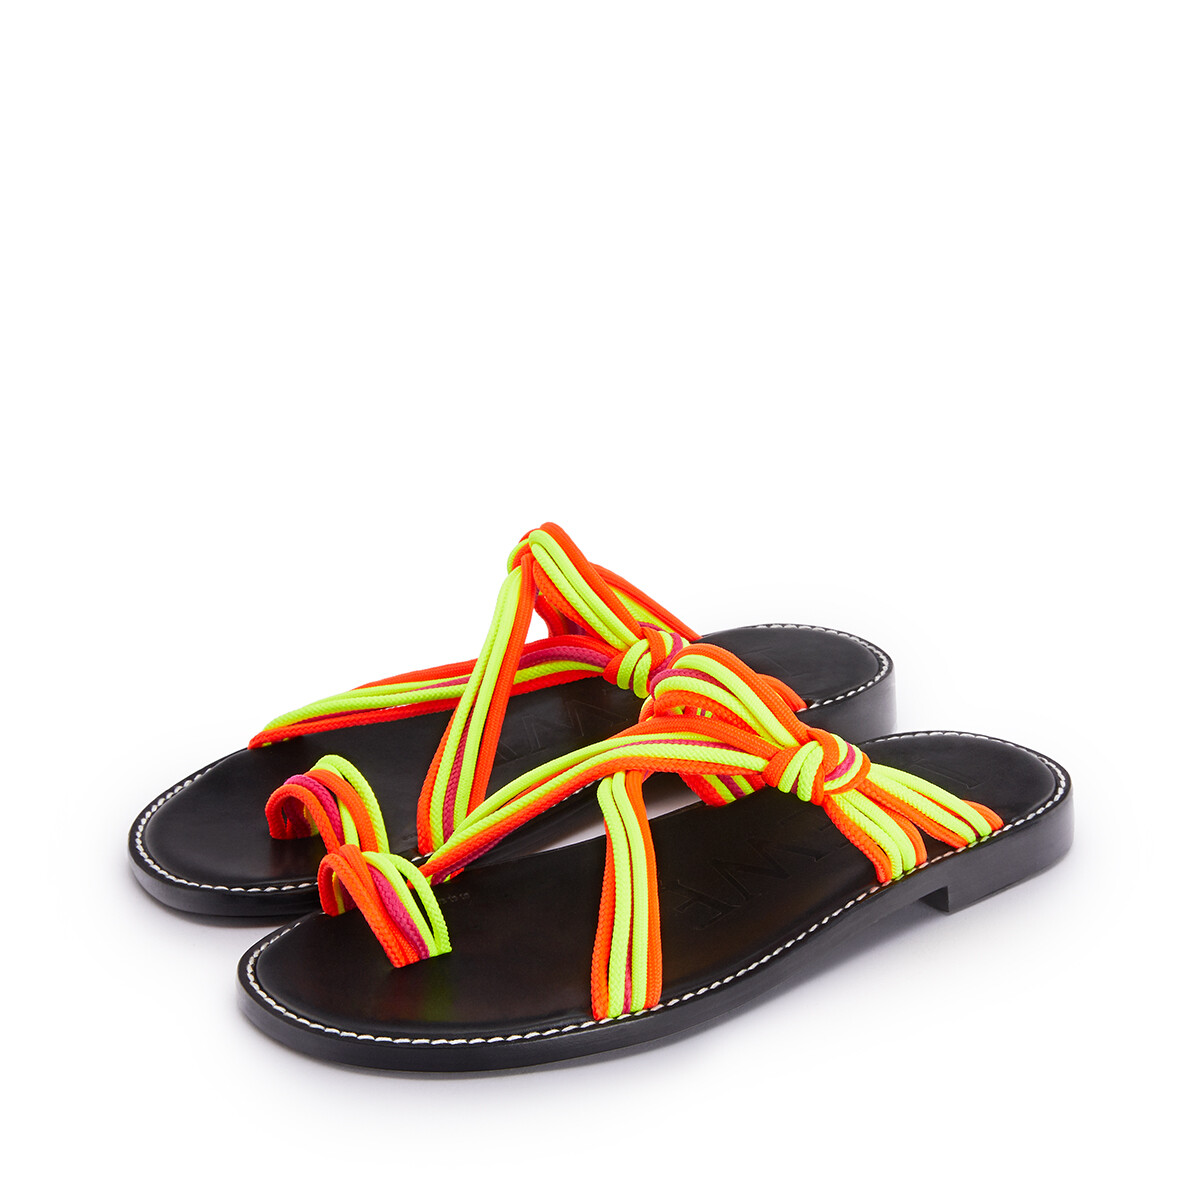 LOEWE Knotted Sandal In Calfskin And Cotton Multicolor/Neon Yellow front